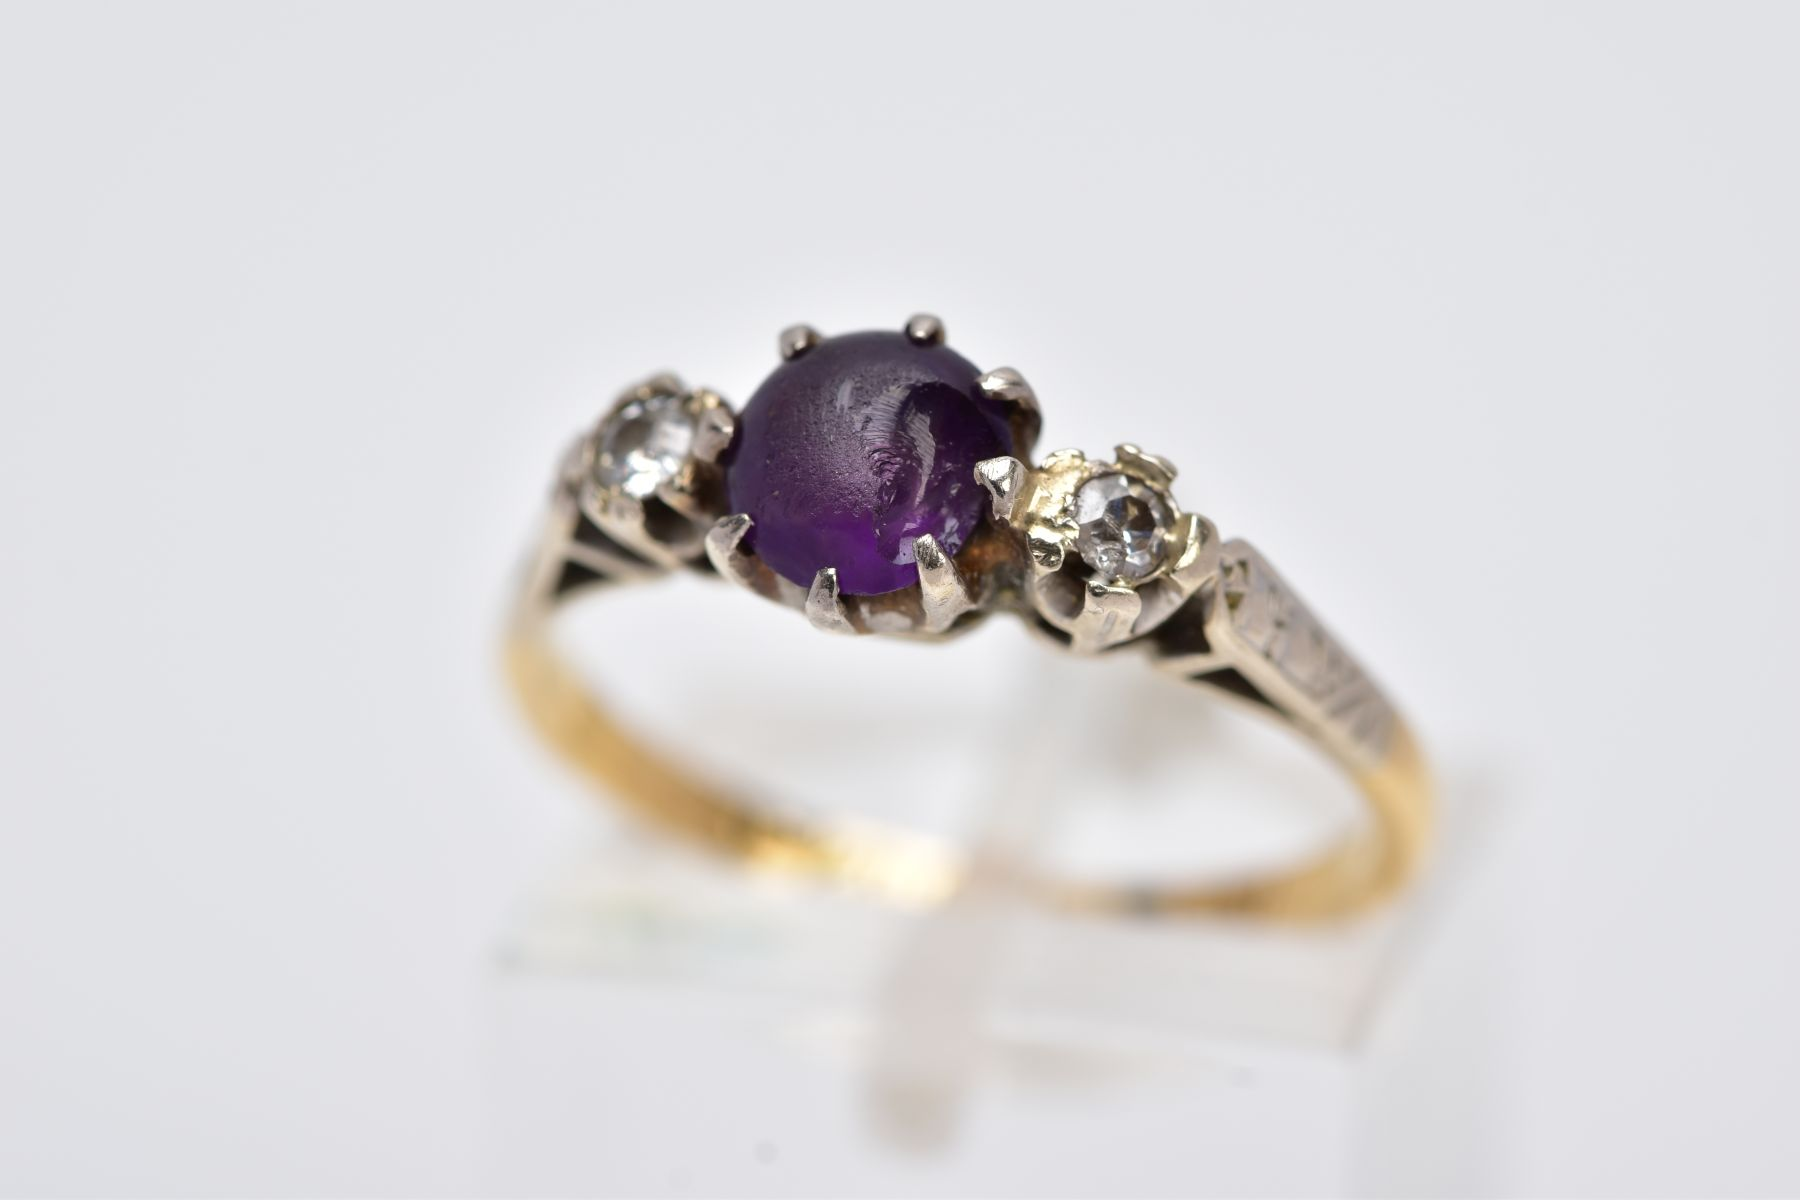 A YELLOW METAL THREE STONE RING, design with a central circular cut purple stone, assessed as paste,